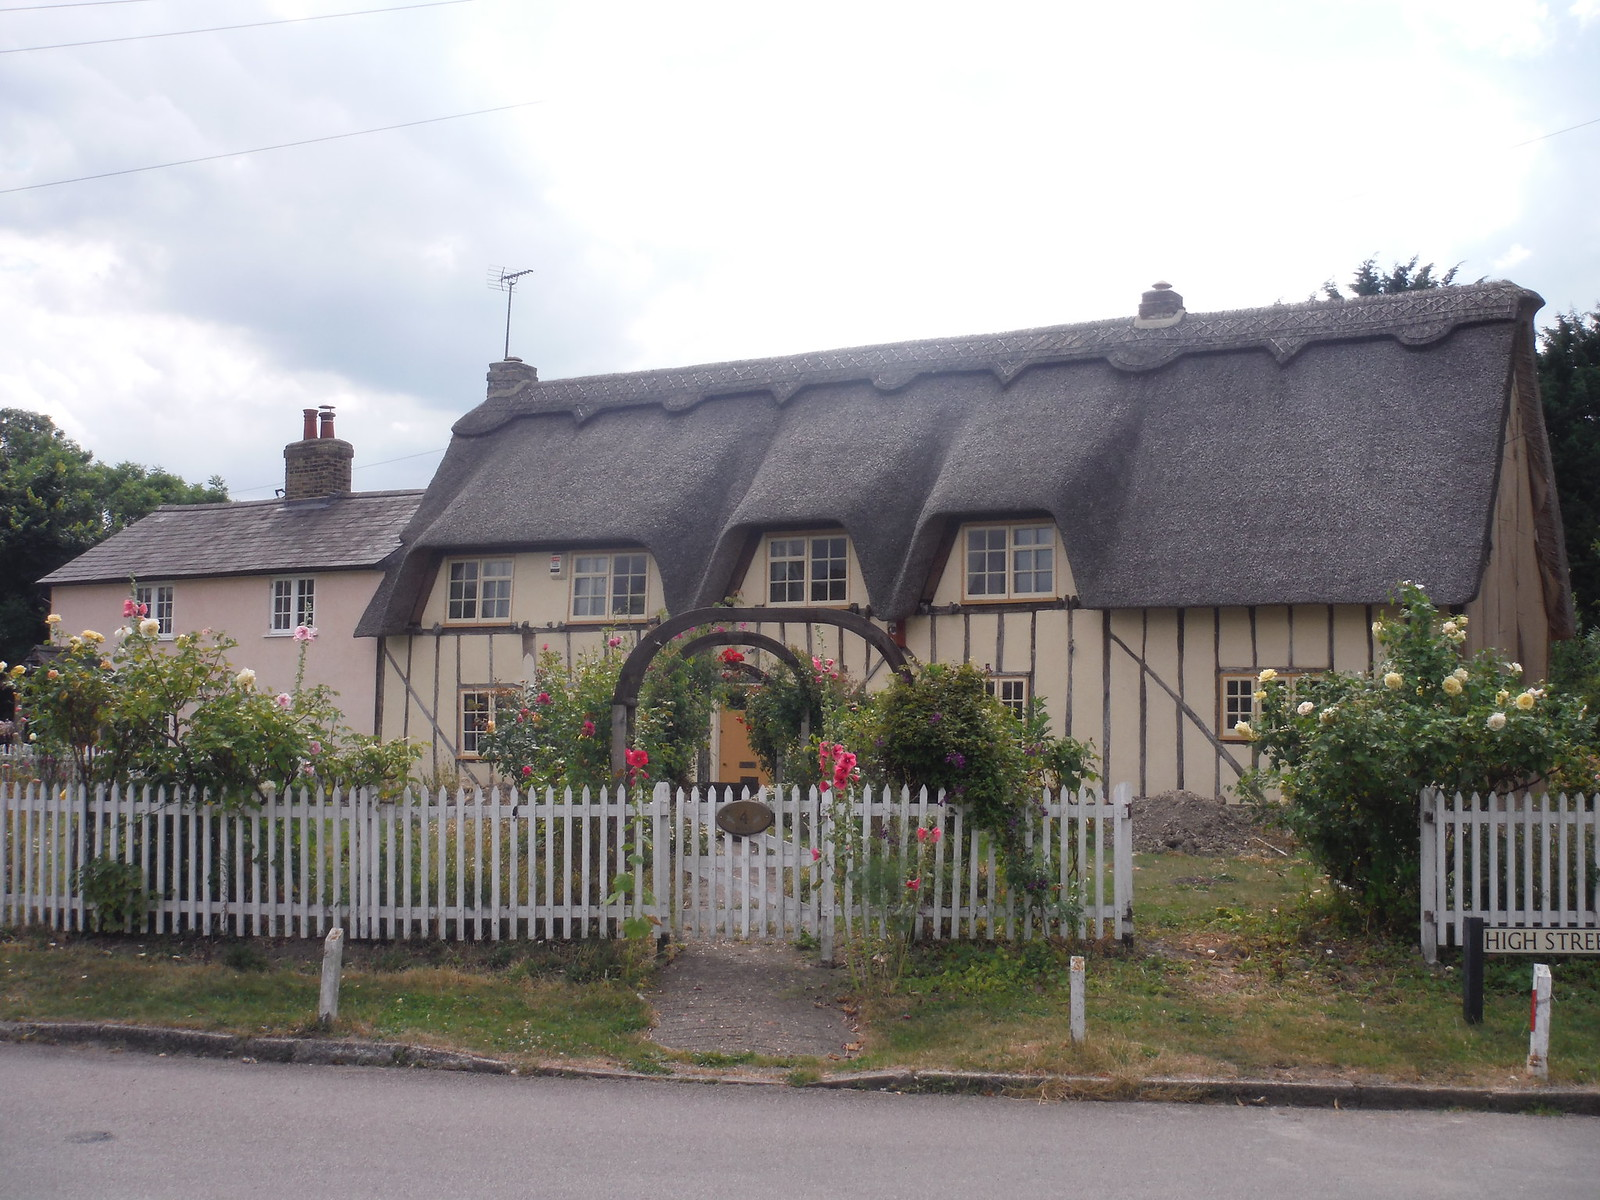 Thatched House, Pirton SWC Walk 233 - Arlesey to Letchworth Garden City